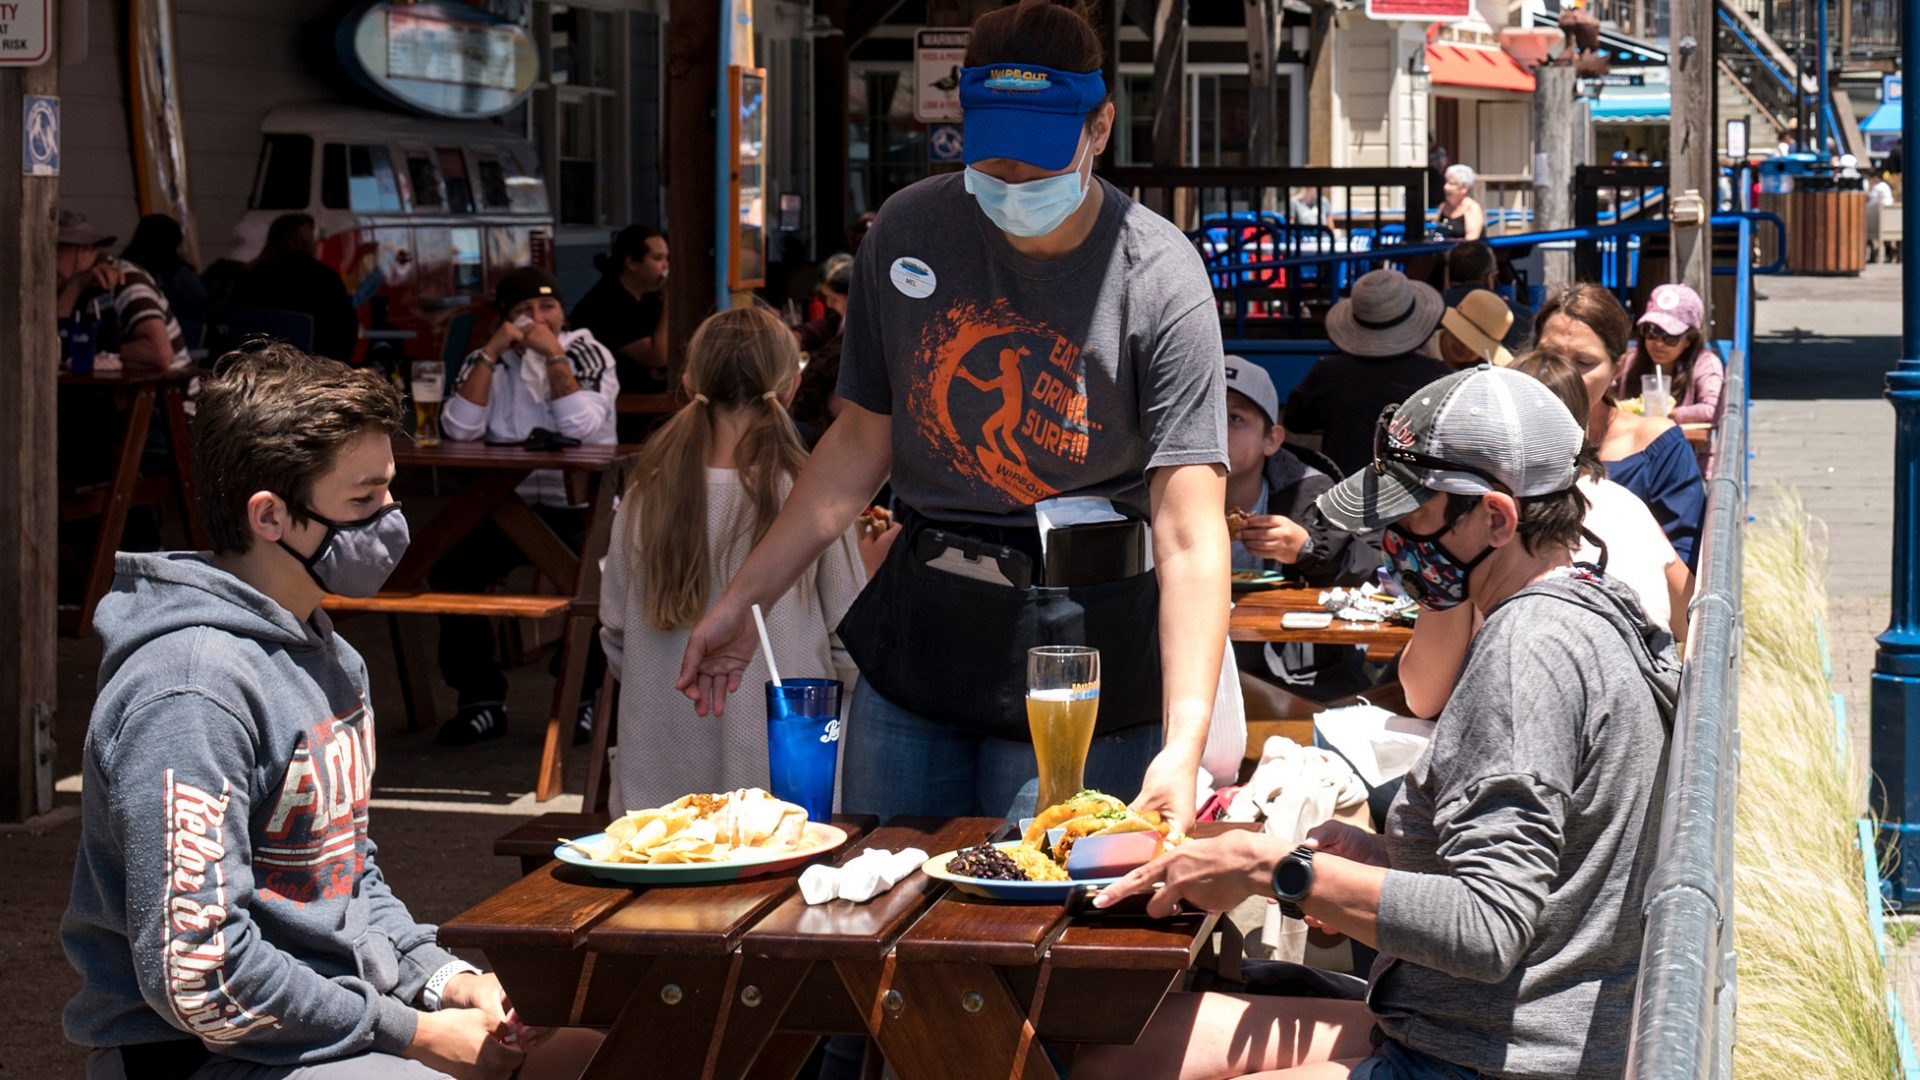 More than 20 U.S. states now require face masks, as officials hope to curb a sharp rise in new coronavirus cases. Here, patrons wear masks as they sit in the outdoor patio of a restaurant on Pier 39 at Fisherman's Wharf in San Francisco.